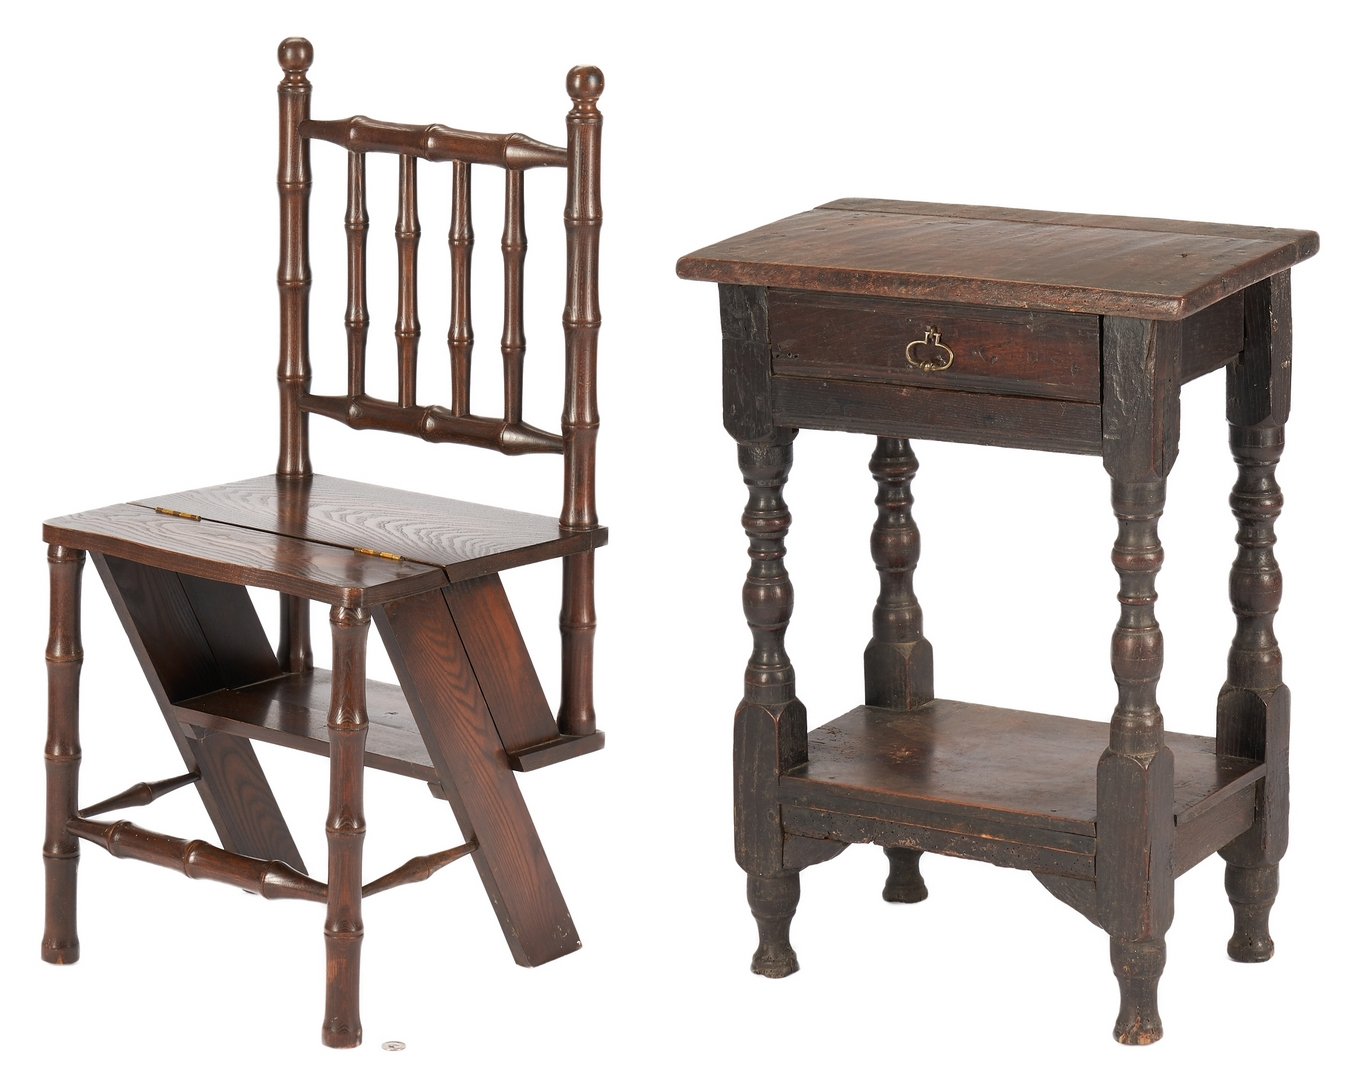 Lot 1031: Early Oak One Drawer Table plus Convertible Library Ladder Chair